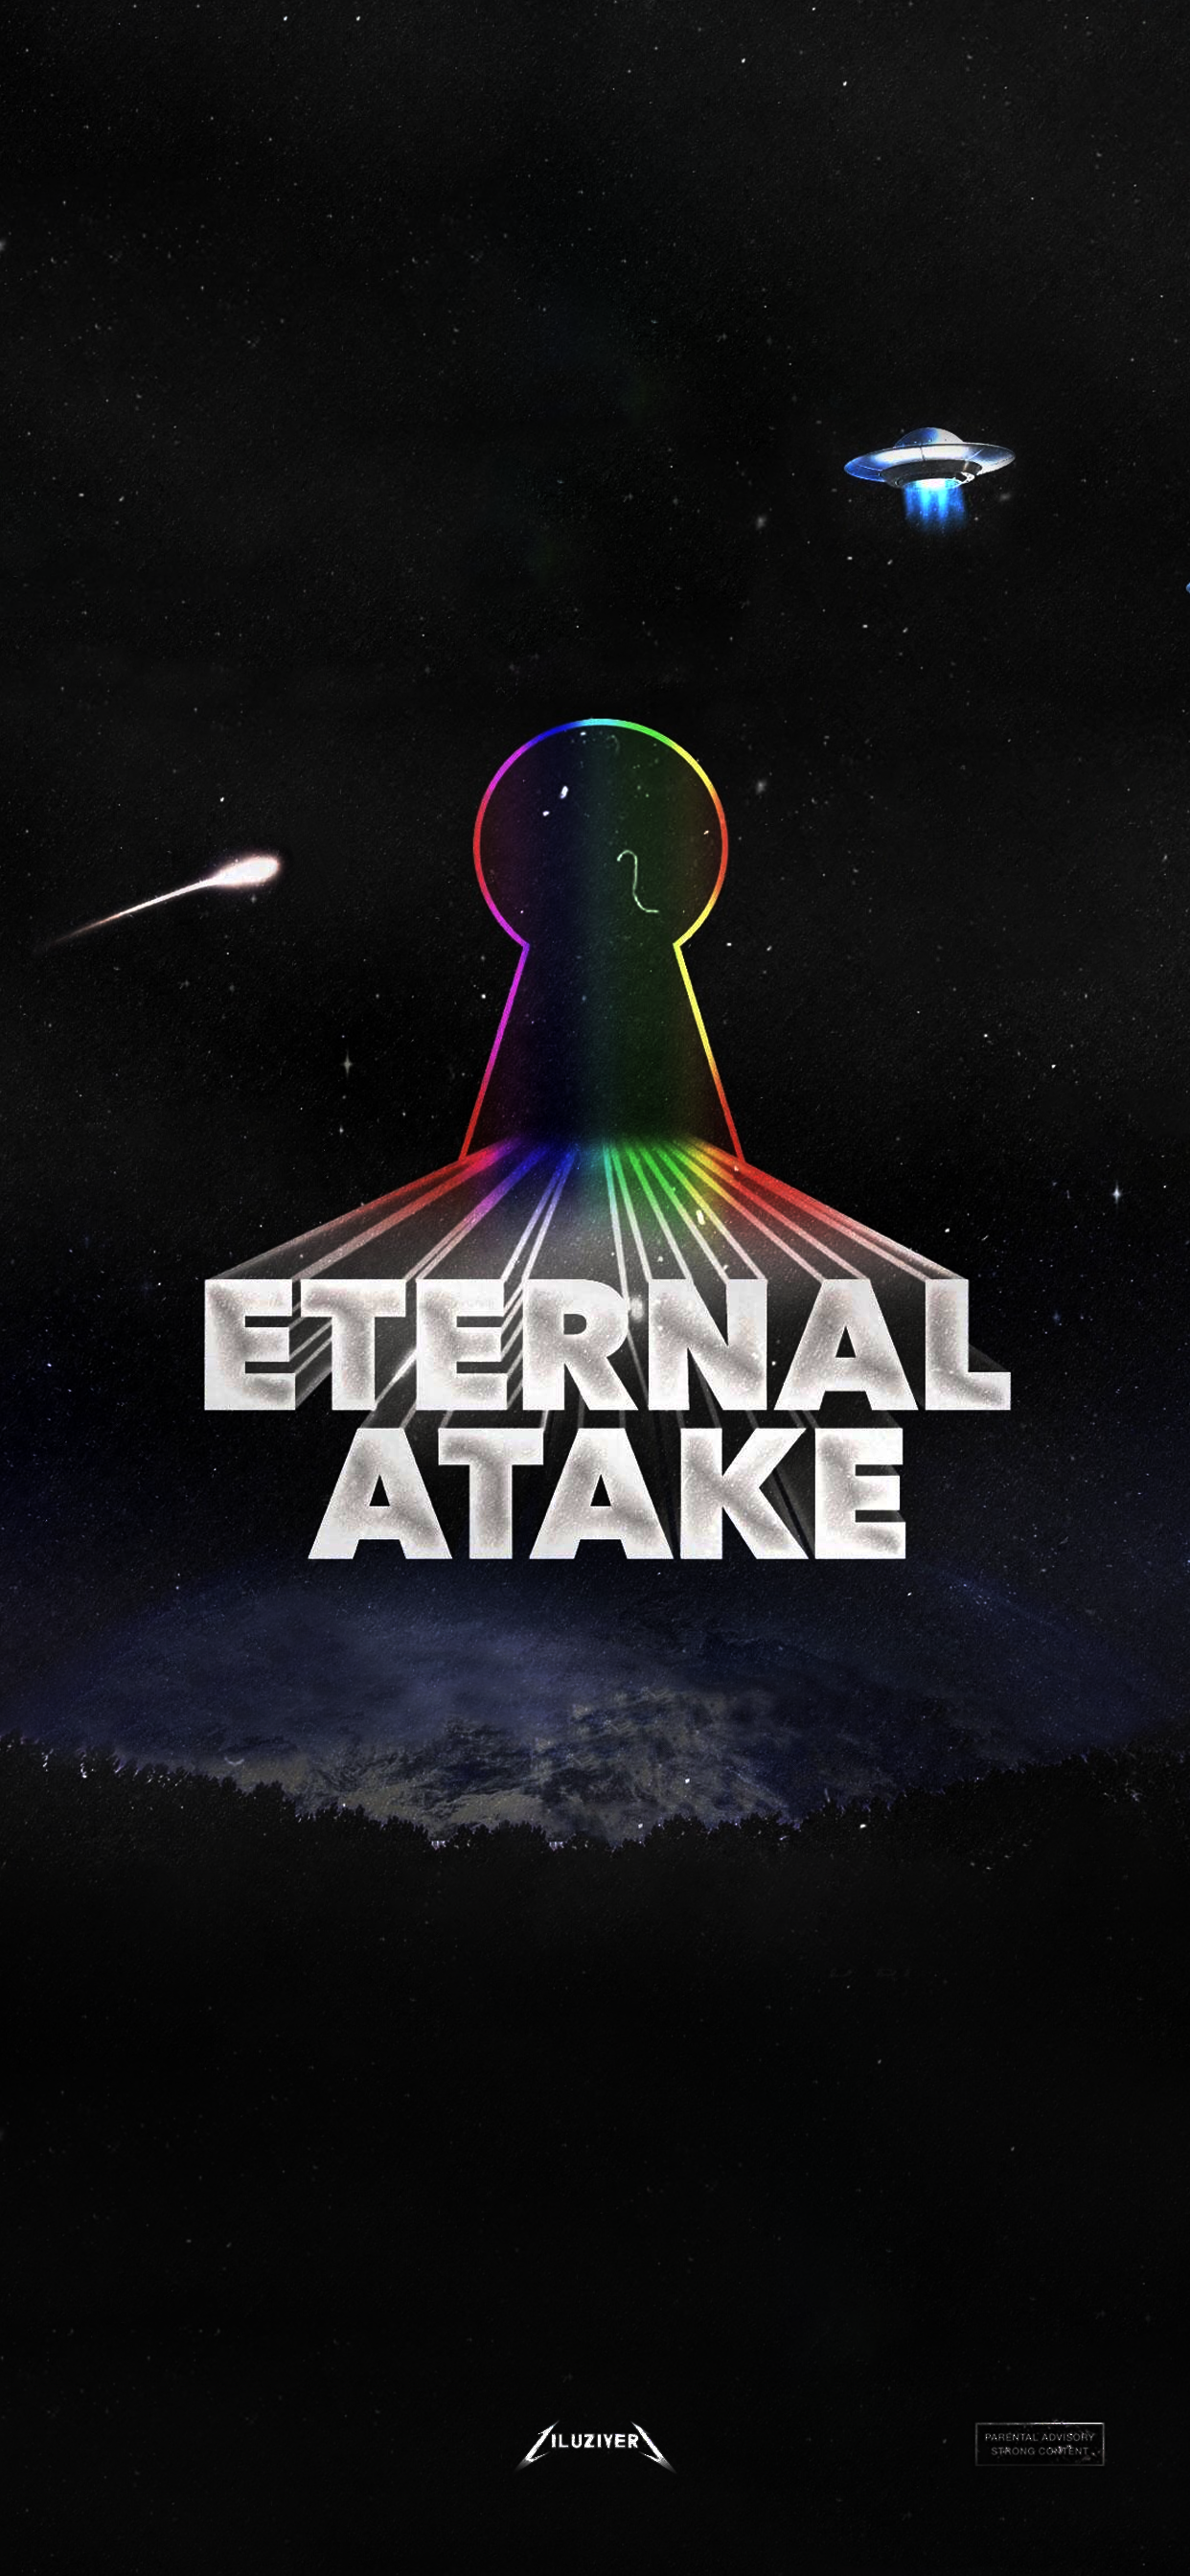 Eternal Atake Anime Wallpapers Wallpaper Cave Is it just considered cool or is there some sort of a philosophy behind? eternal atake anime wallpapers